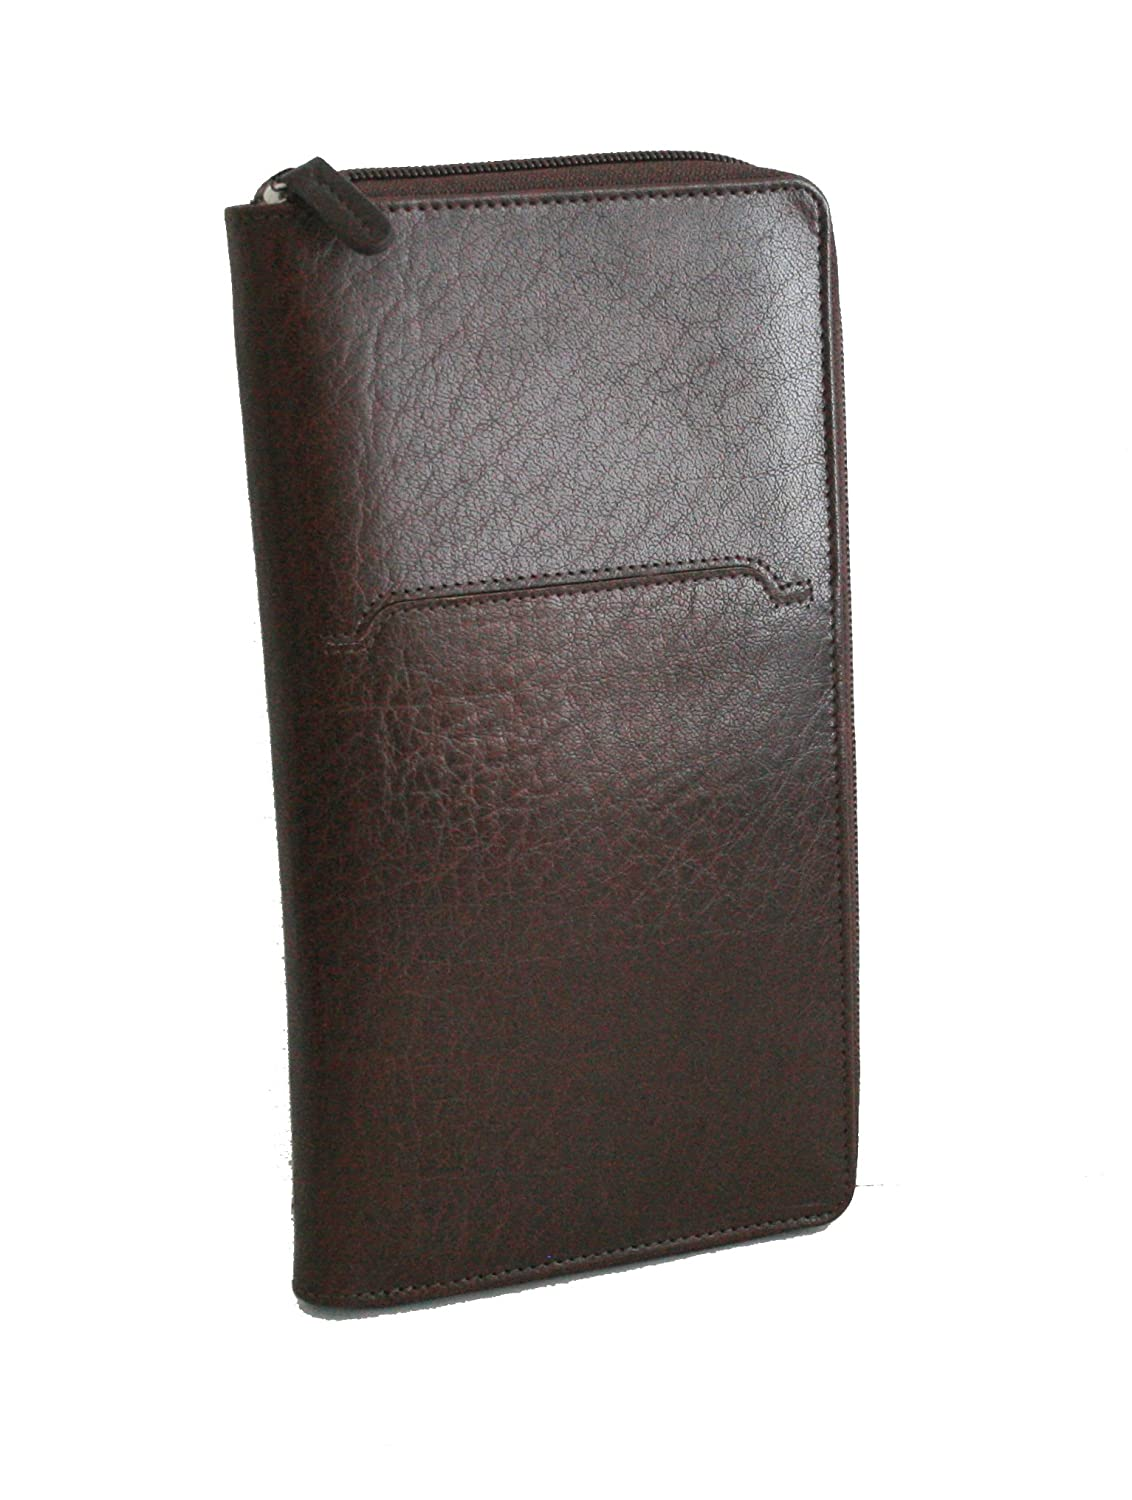 de2045ca30ca Genuine Leather Zip Around TRAVEL Wallet in Dark Brown, UNISEX! so ...